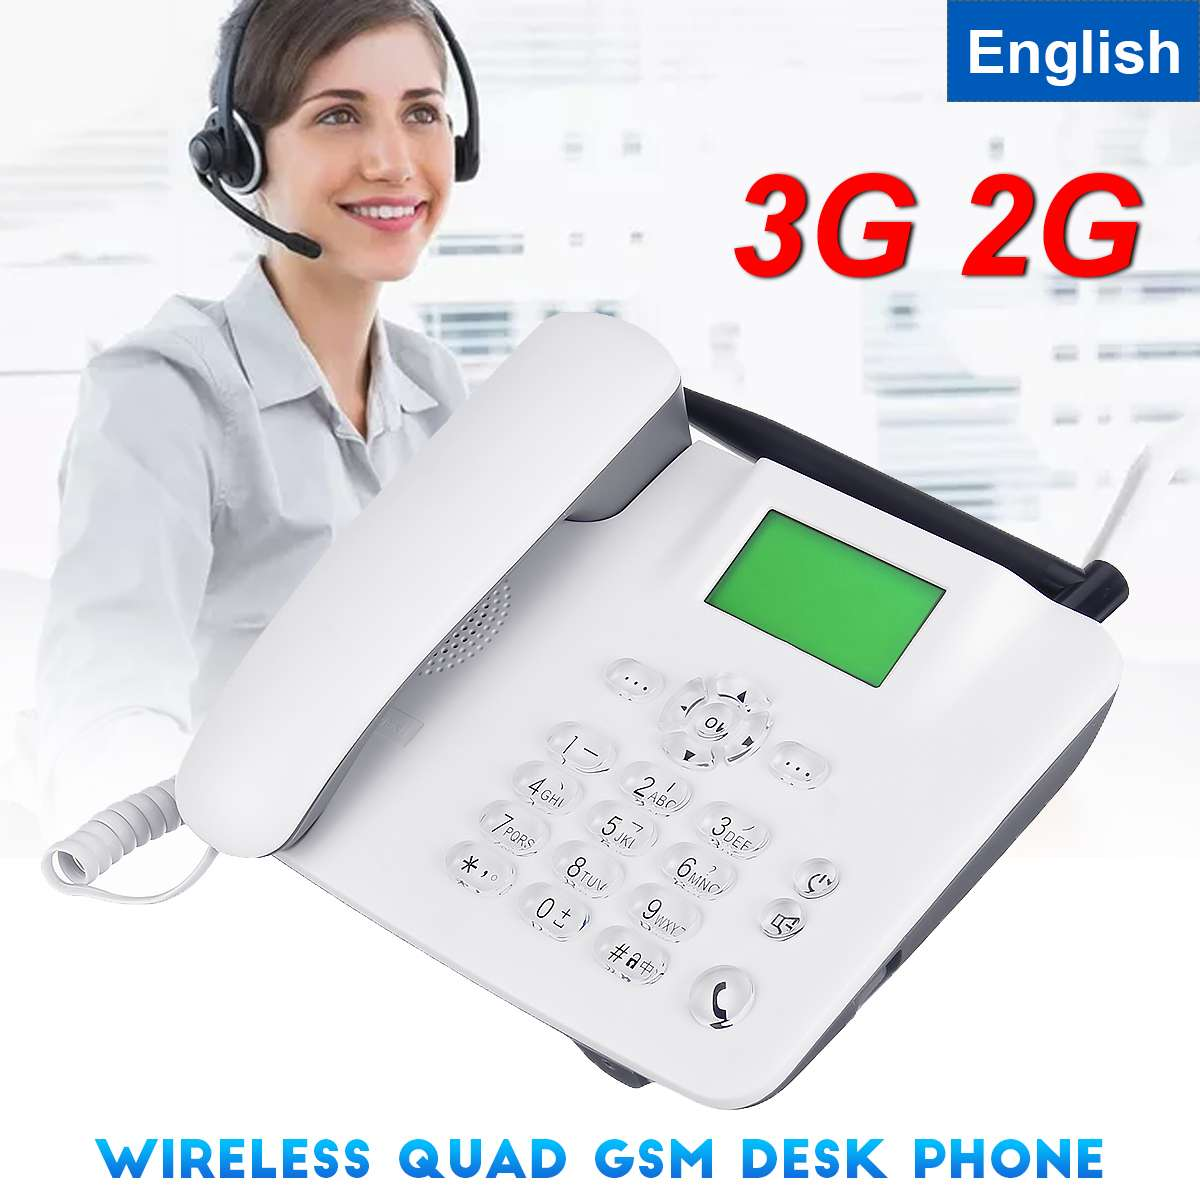 3G 2G GSM Fixed Wireless Phone Desk Mobile Phone LCD Screen SIM Card Desktop Antenna Interface  Incoming Call Display 100-240V